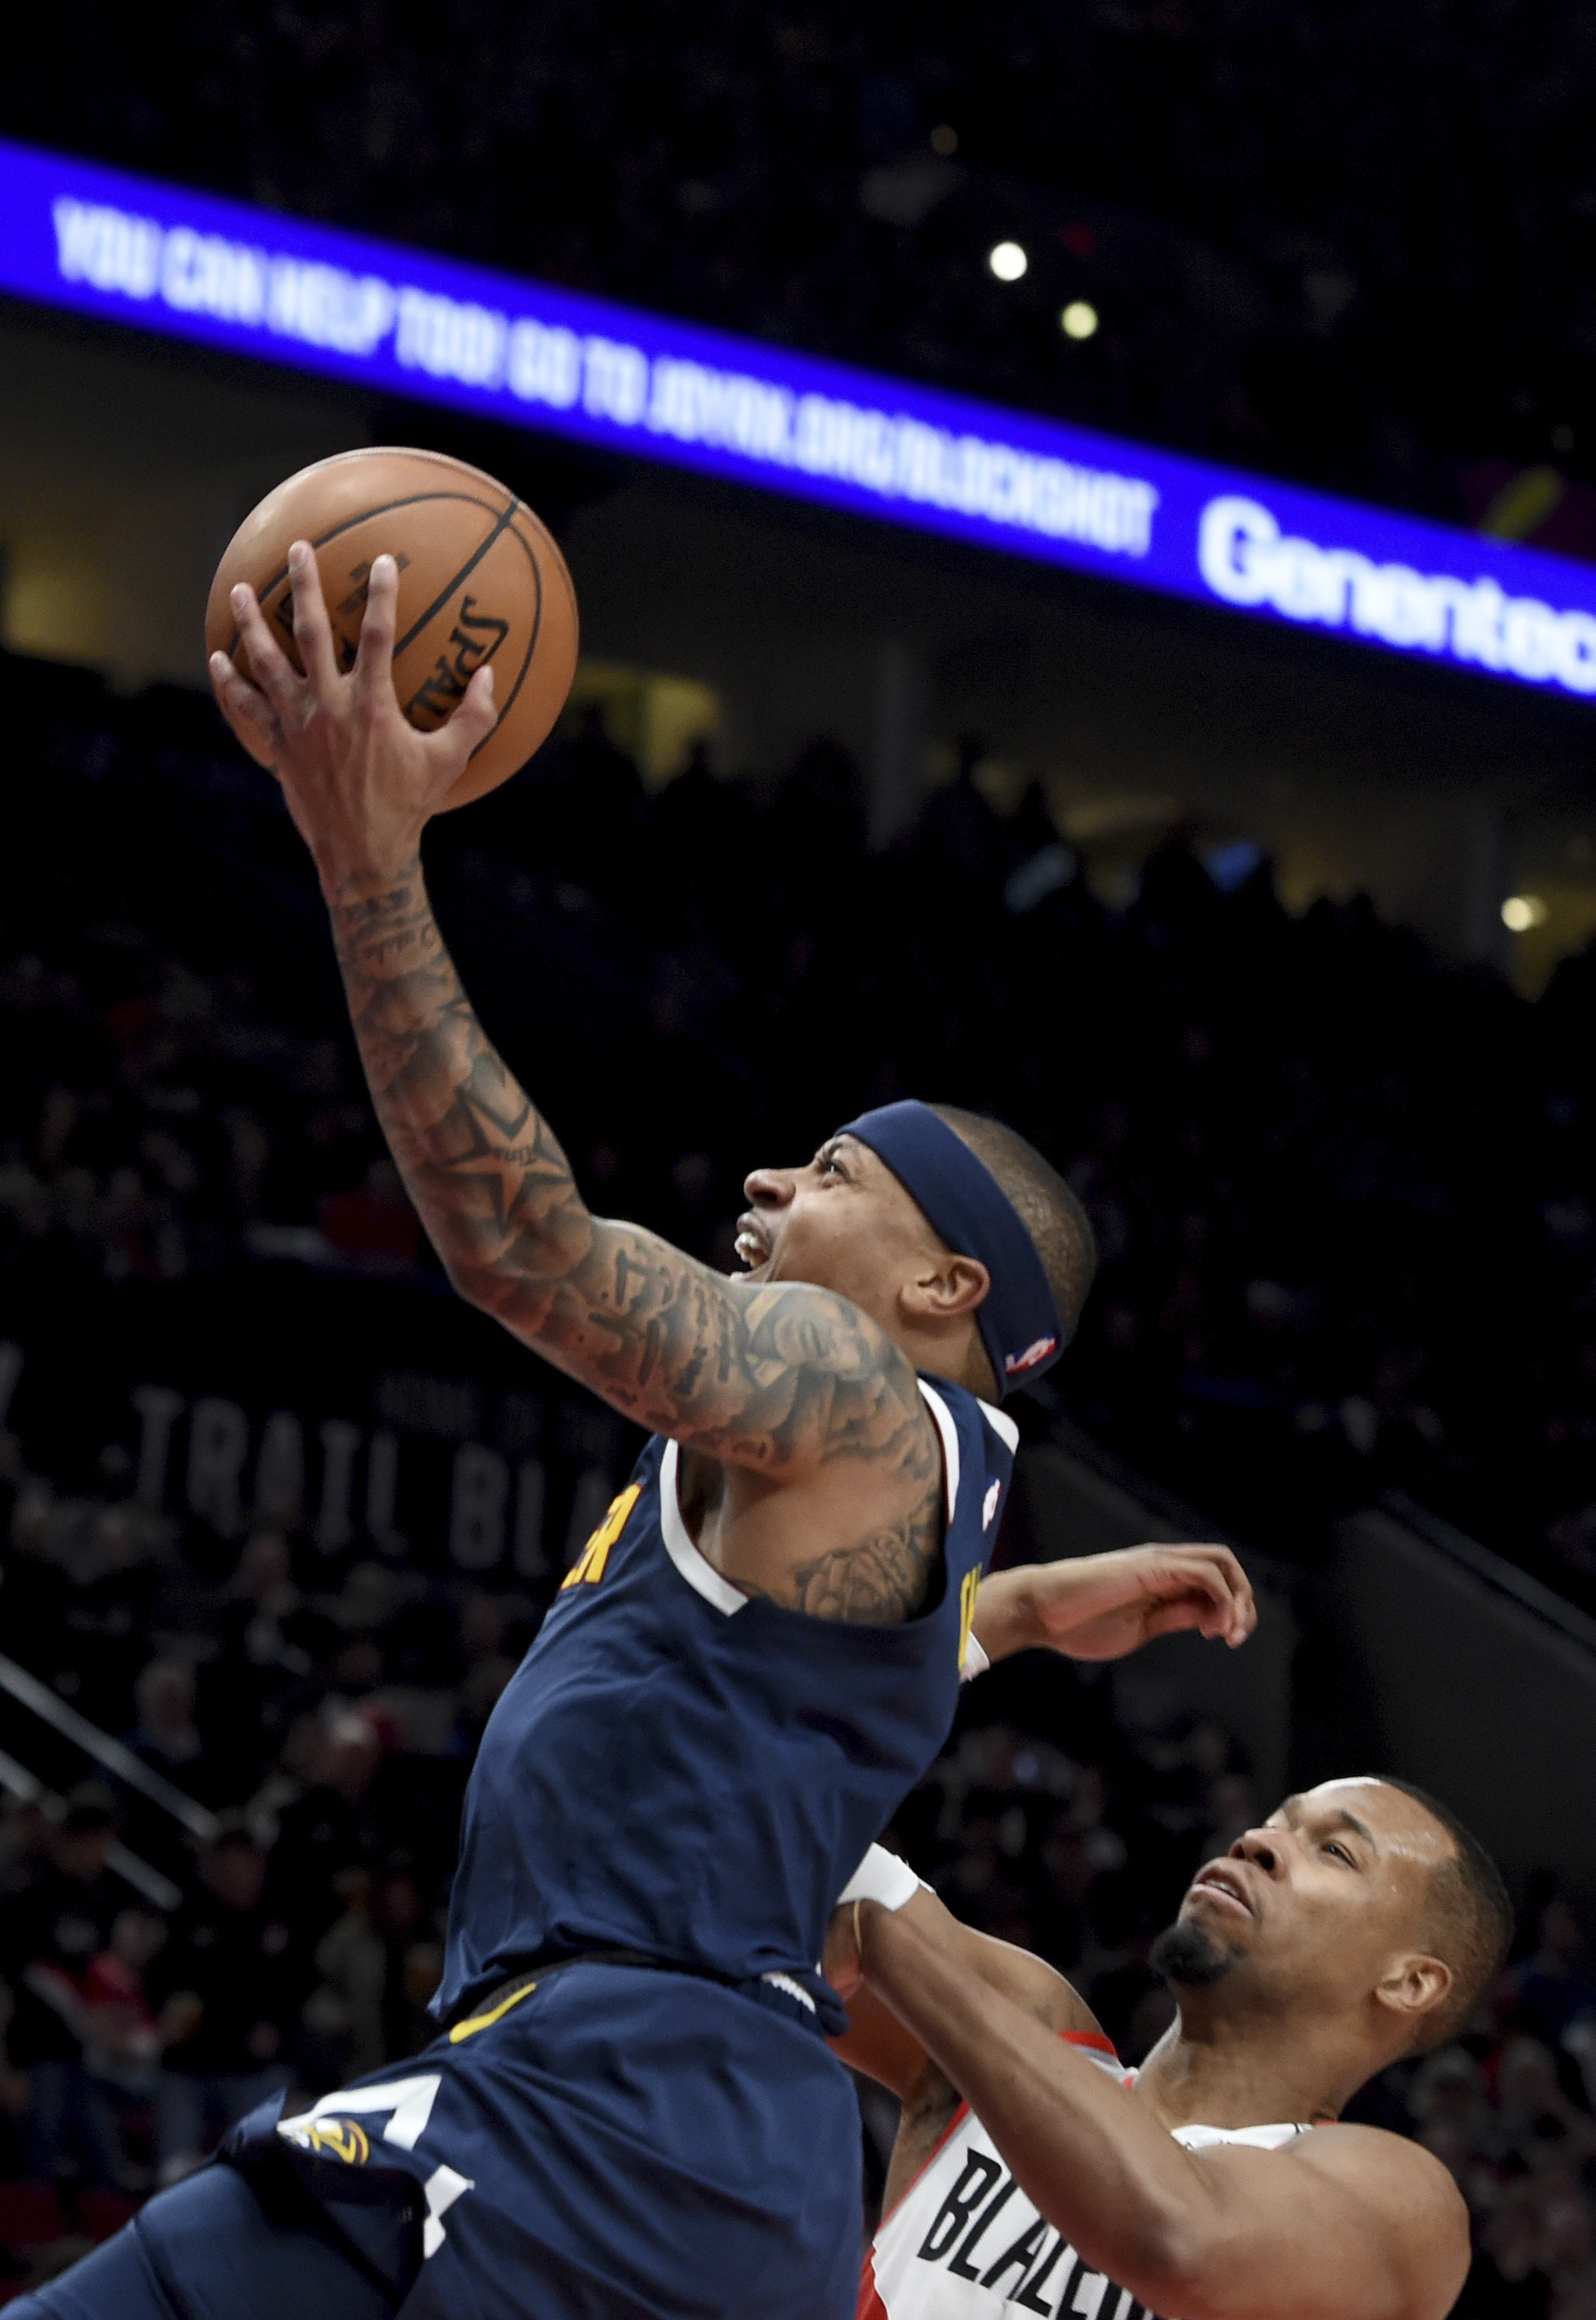 f5b402459ce Denver Nuggets guard Isaiah Thomas (left) drives to the basket on Portland  Trail Blazers guard Rodney Hood (right) during the first half of an NBA ...